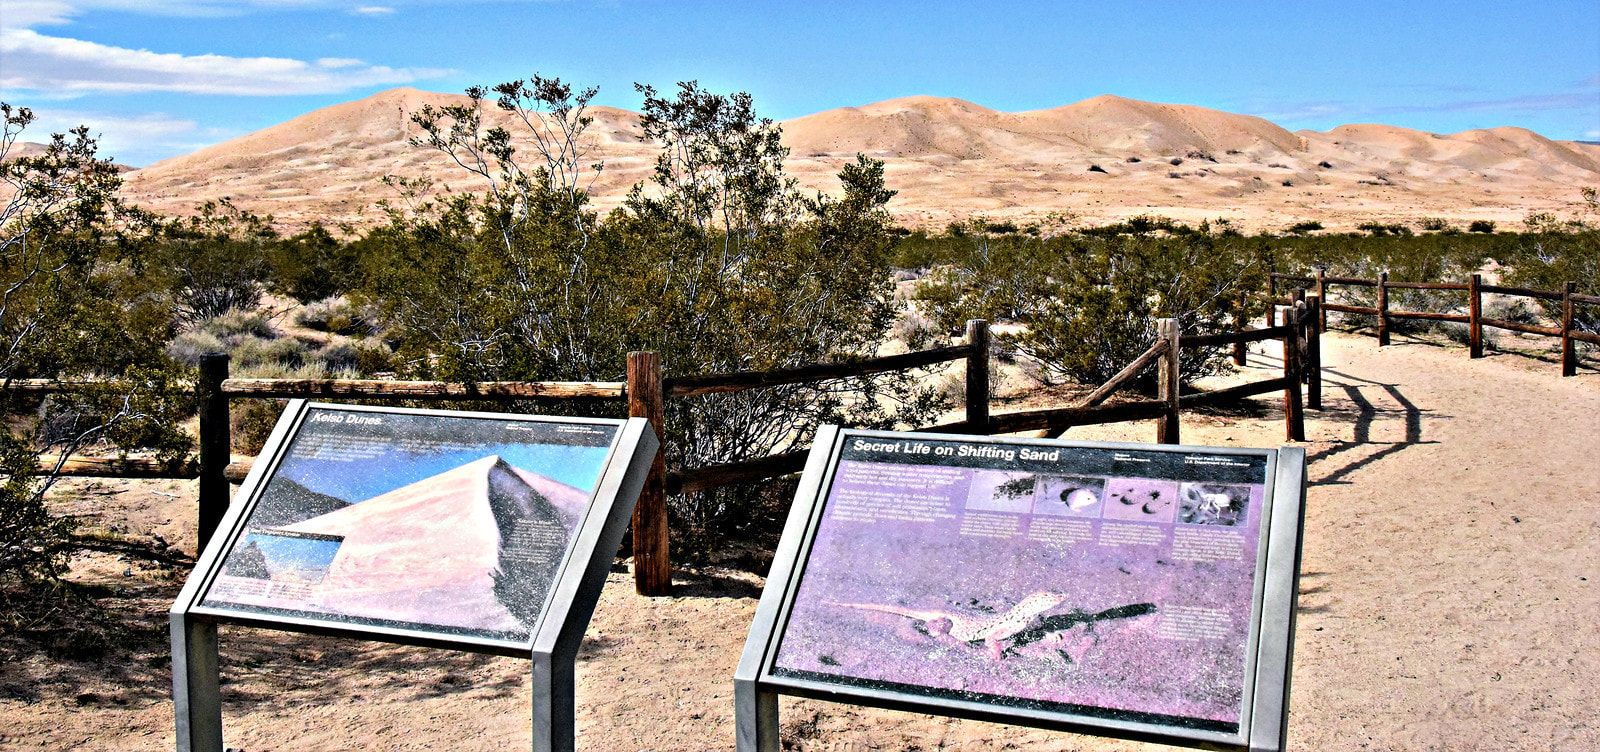 Kelso Dunes Trailhead - Mojave National Preserve